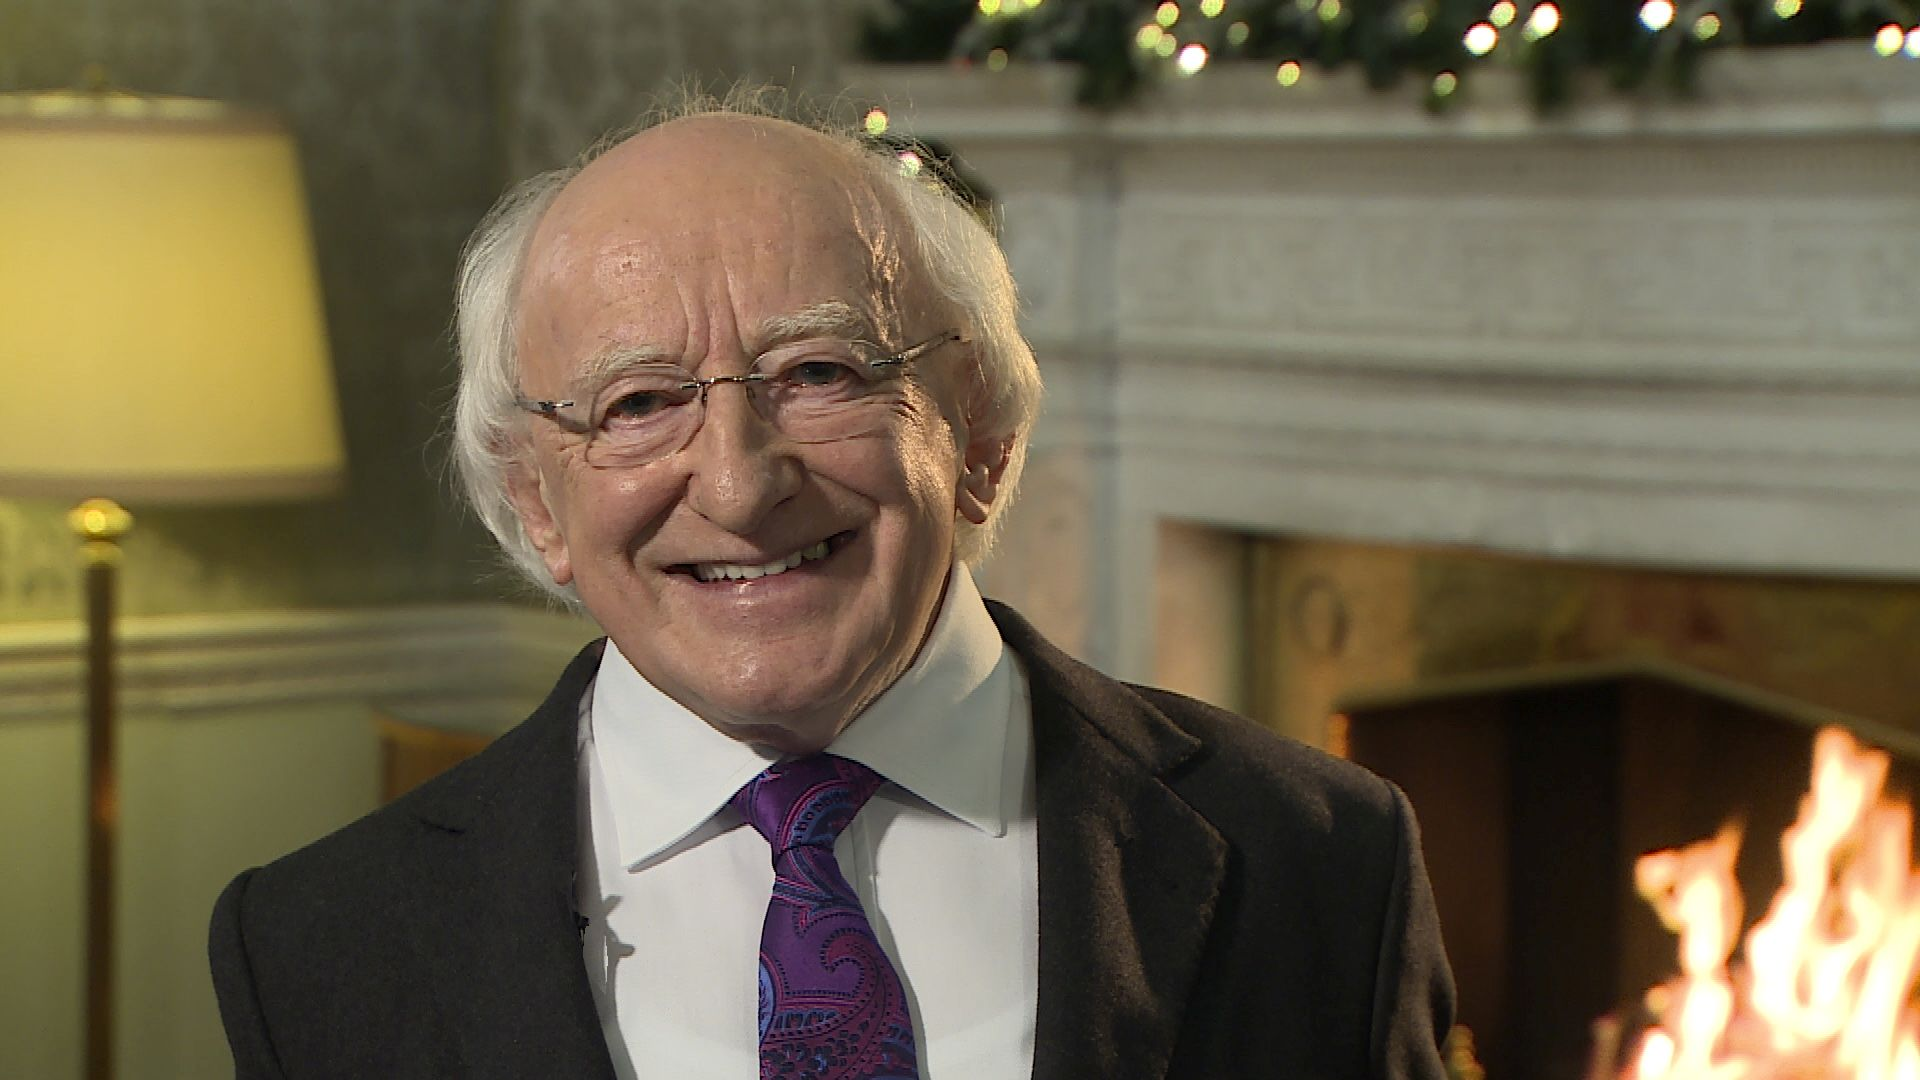 A Christmas and New Year's Message from President Michael D. Higgins